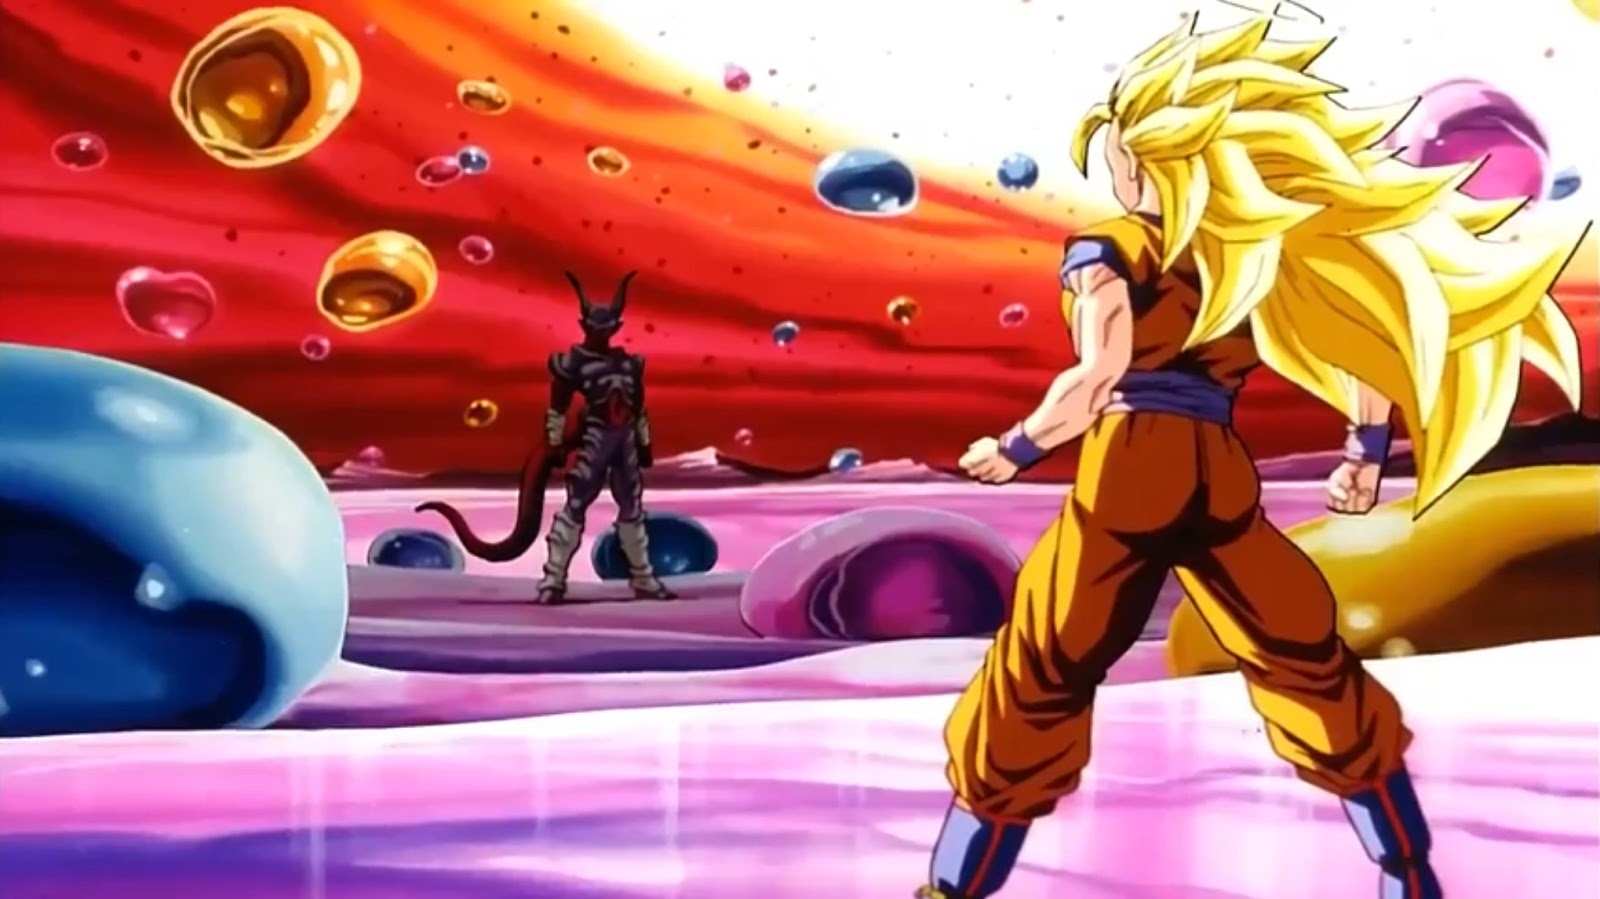 fusion dragon ball pelicula